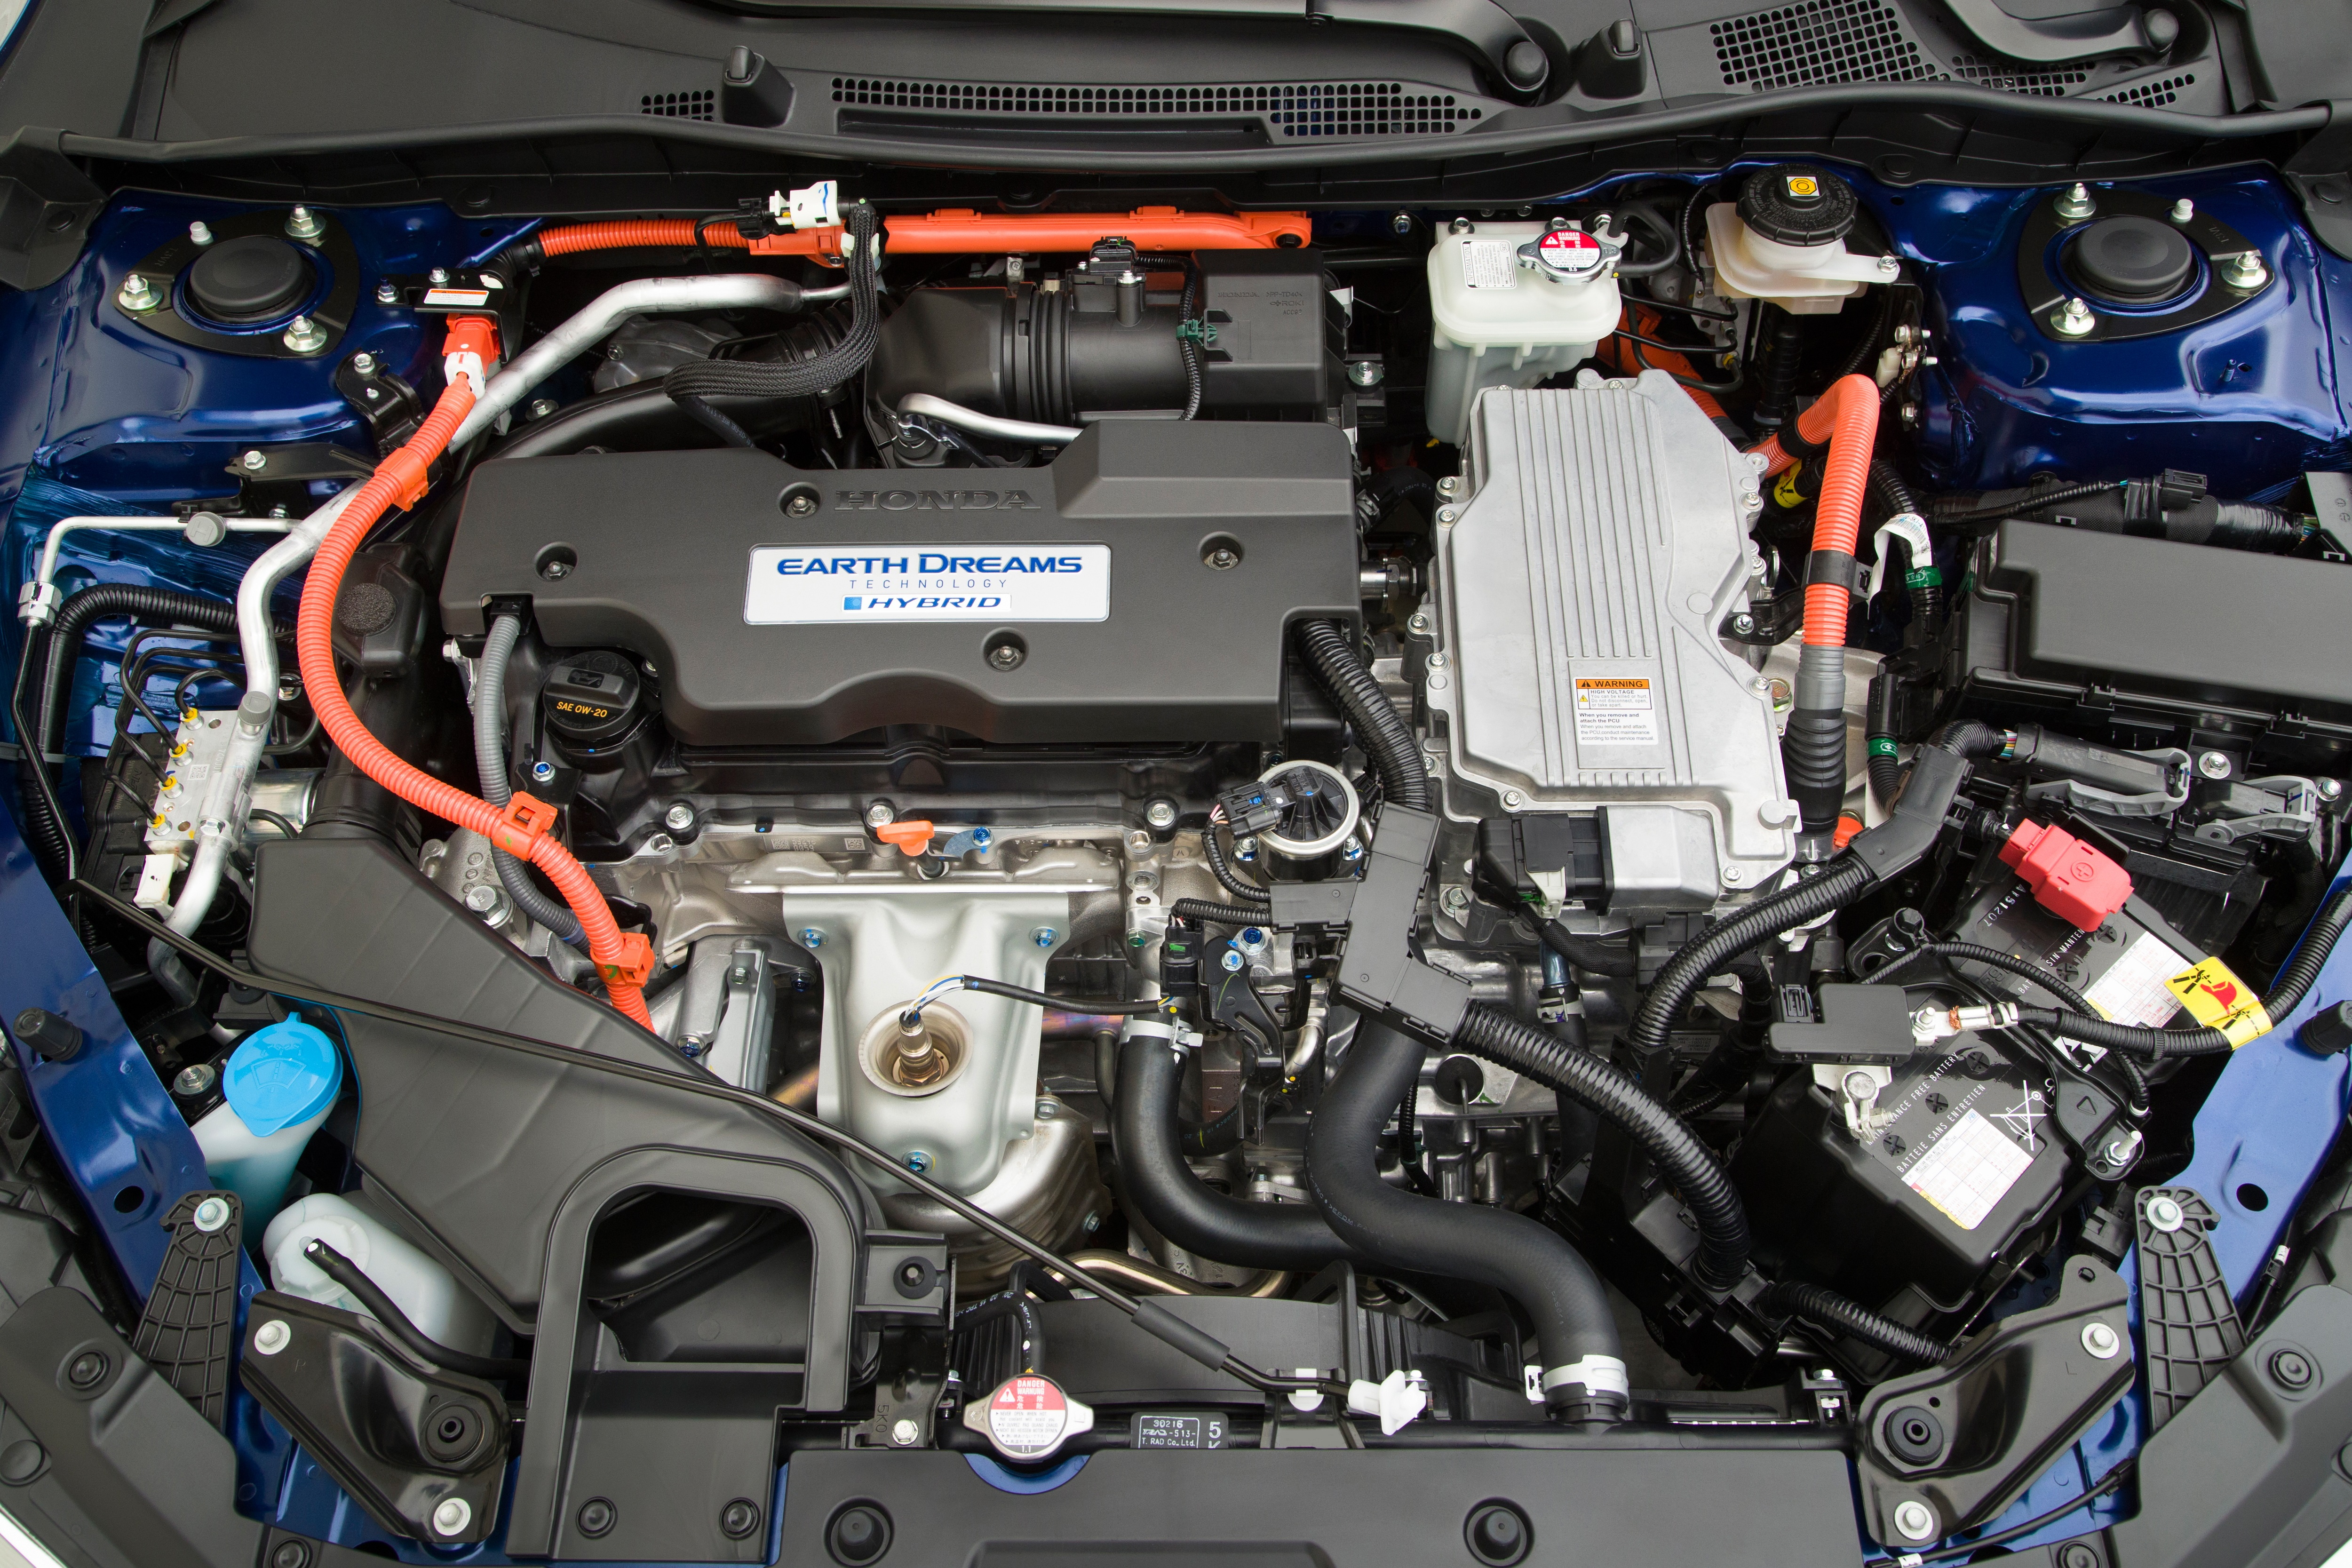 The power control unit is the silver-coloured device next to the engine.